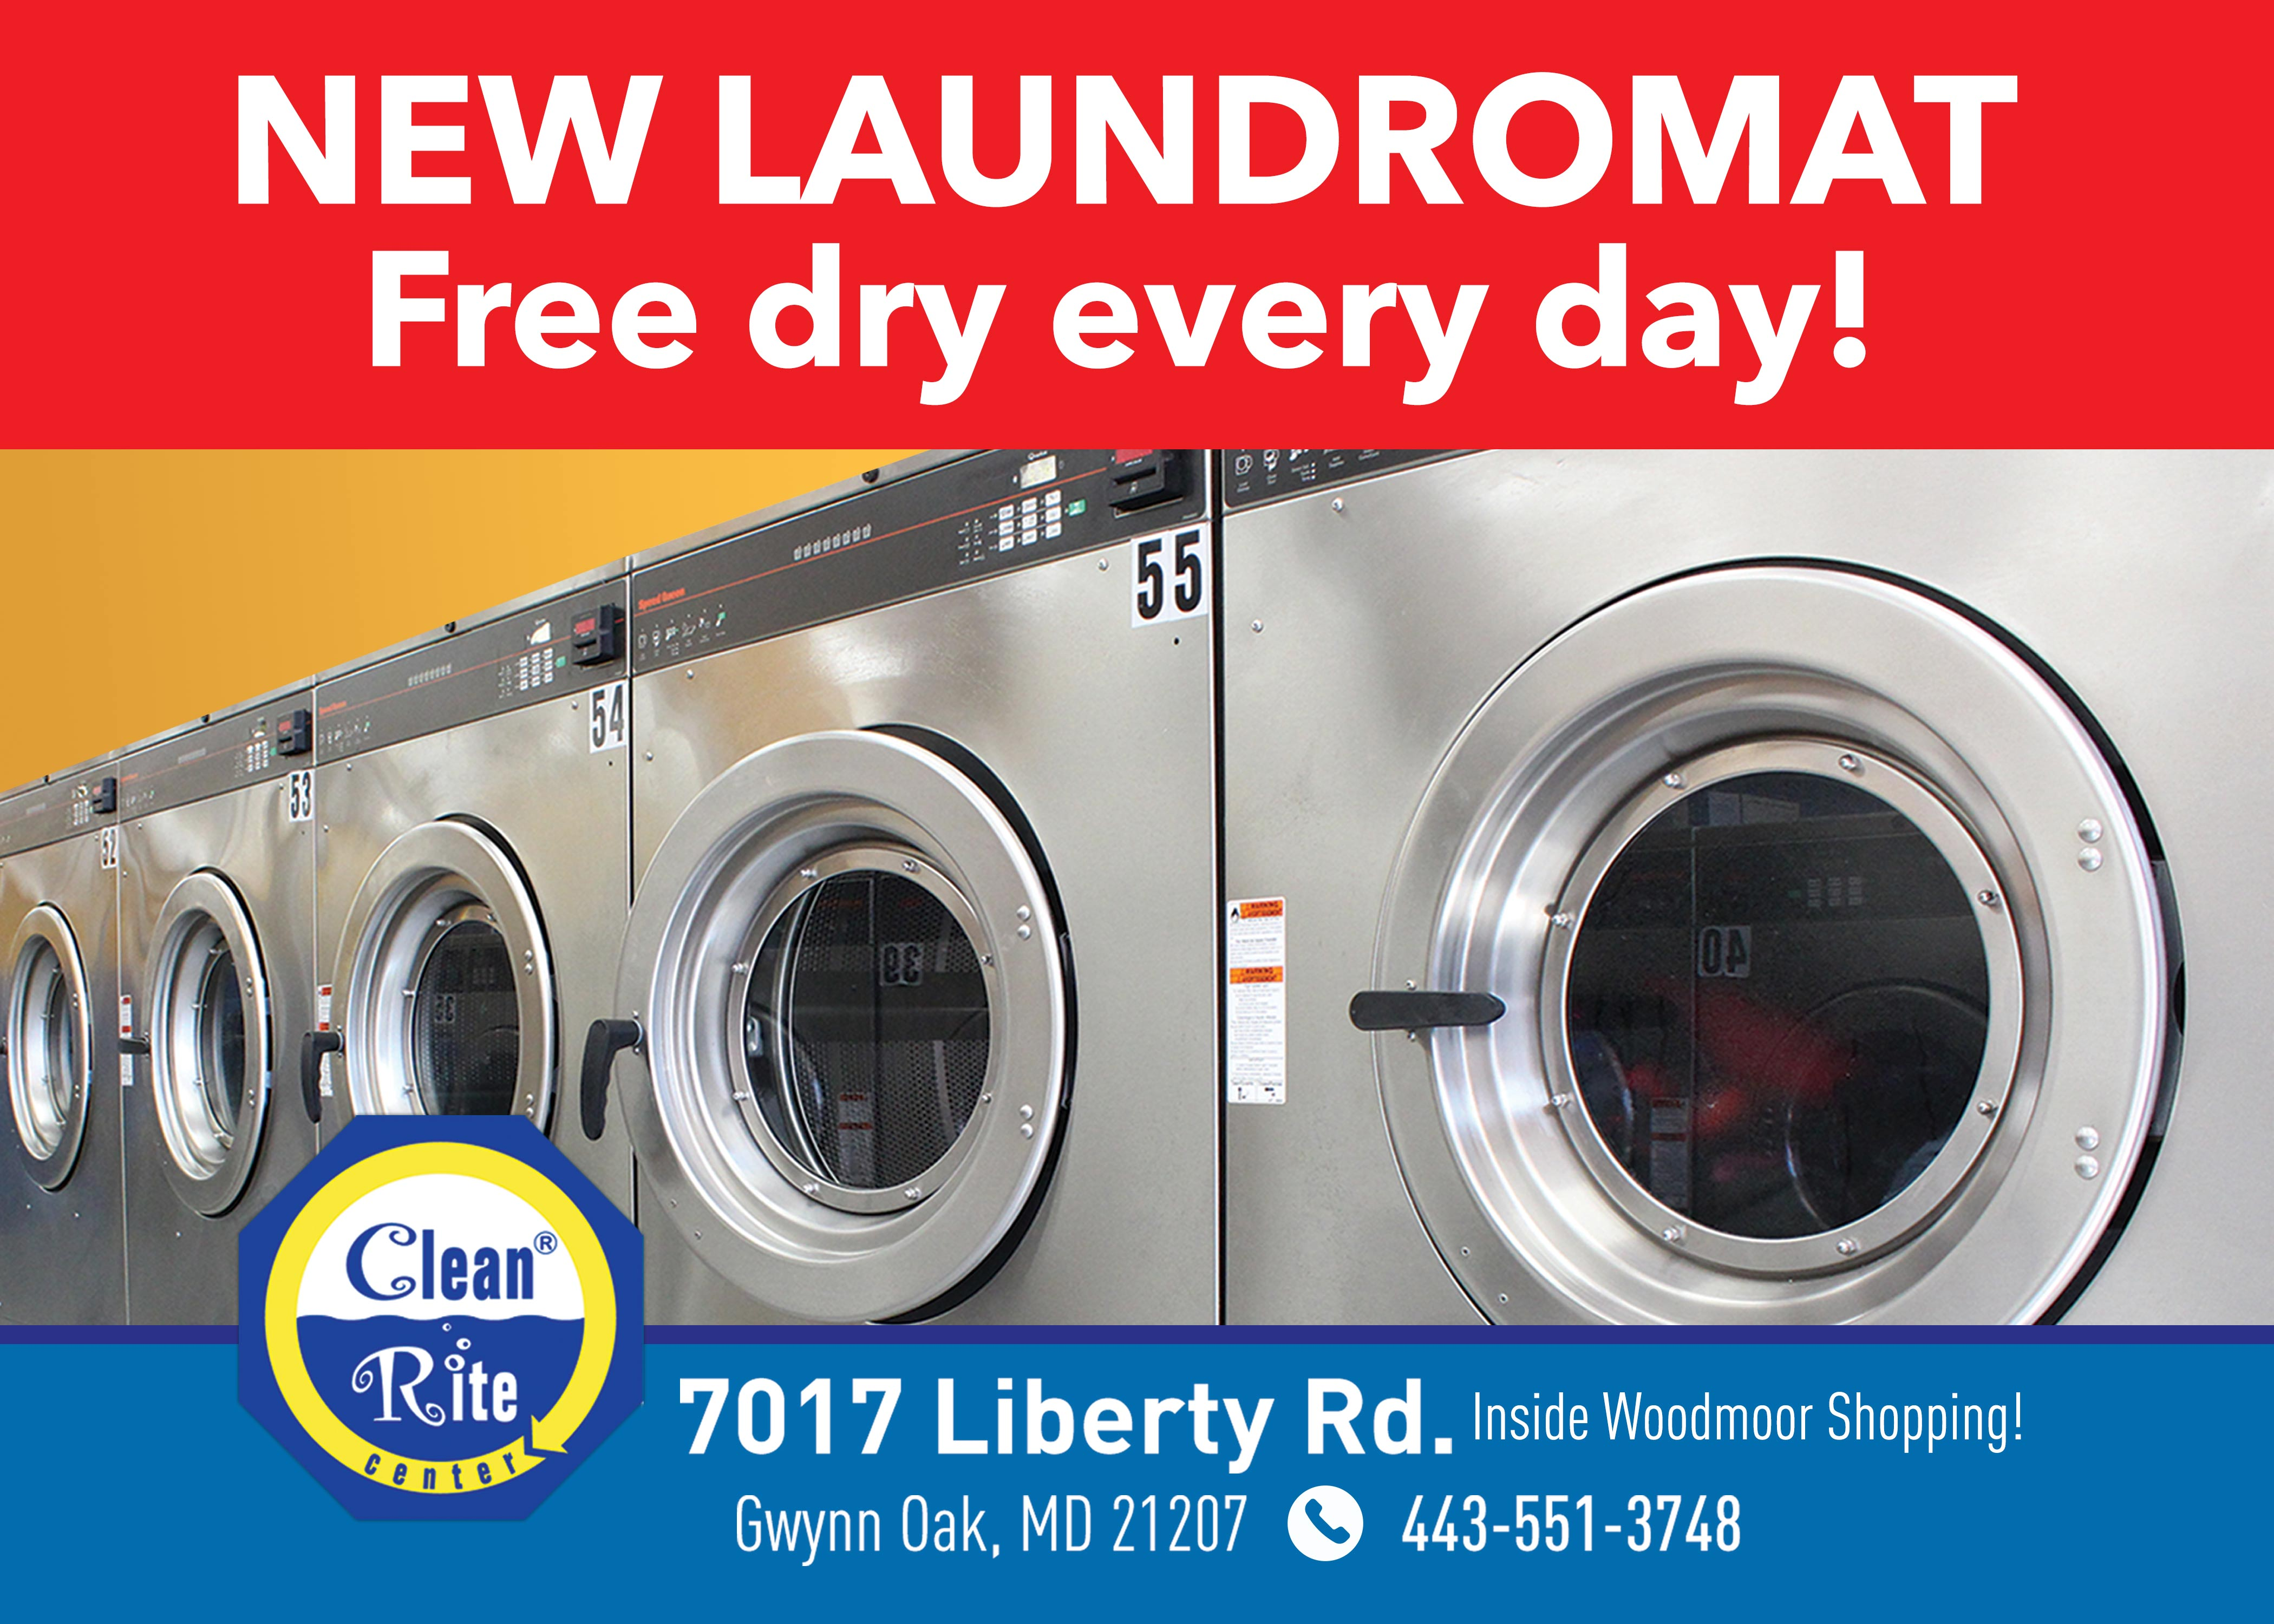 Brand New Laundromat In Gwynn Oak